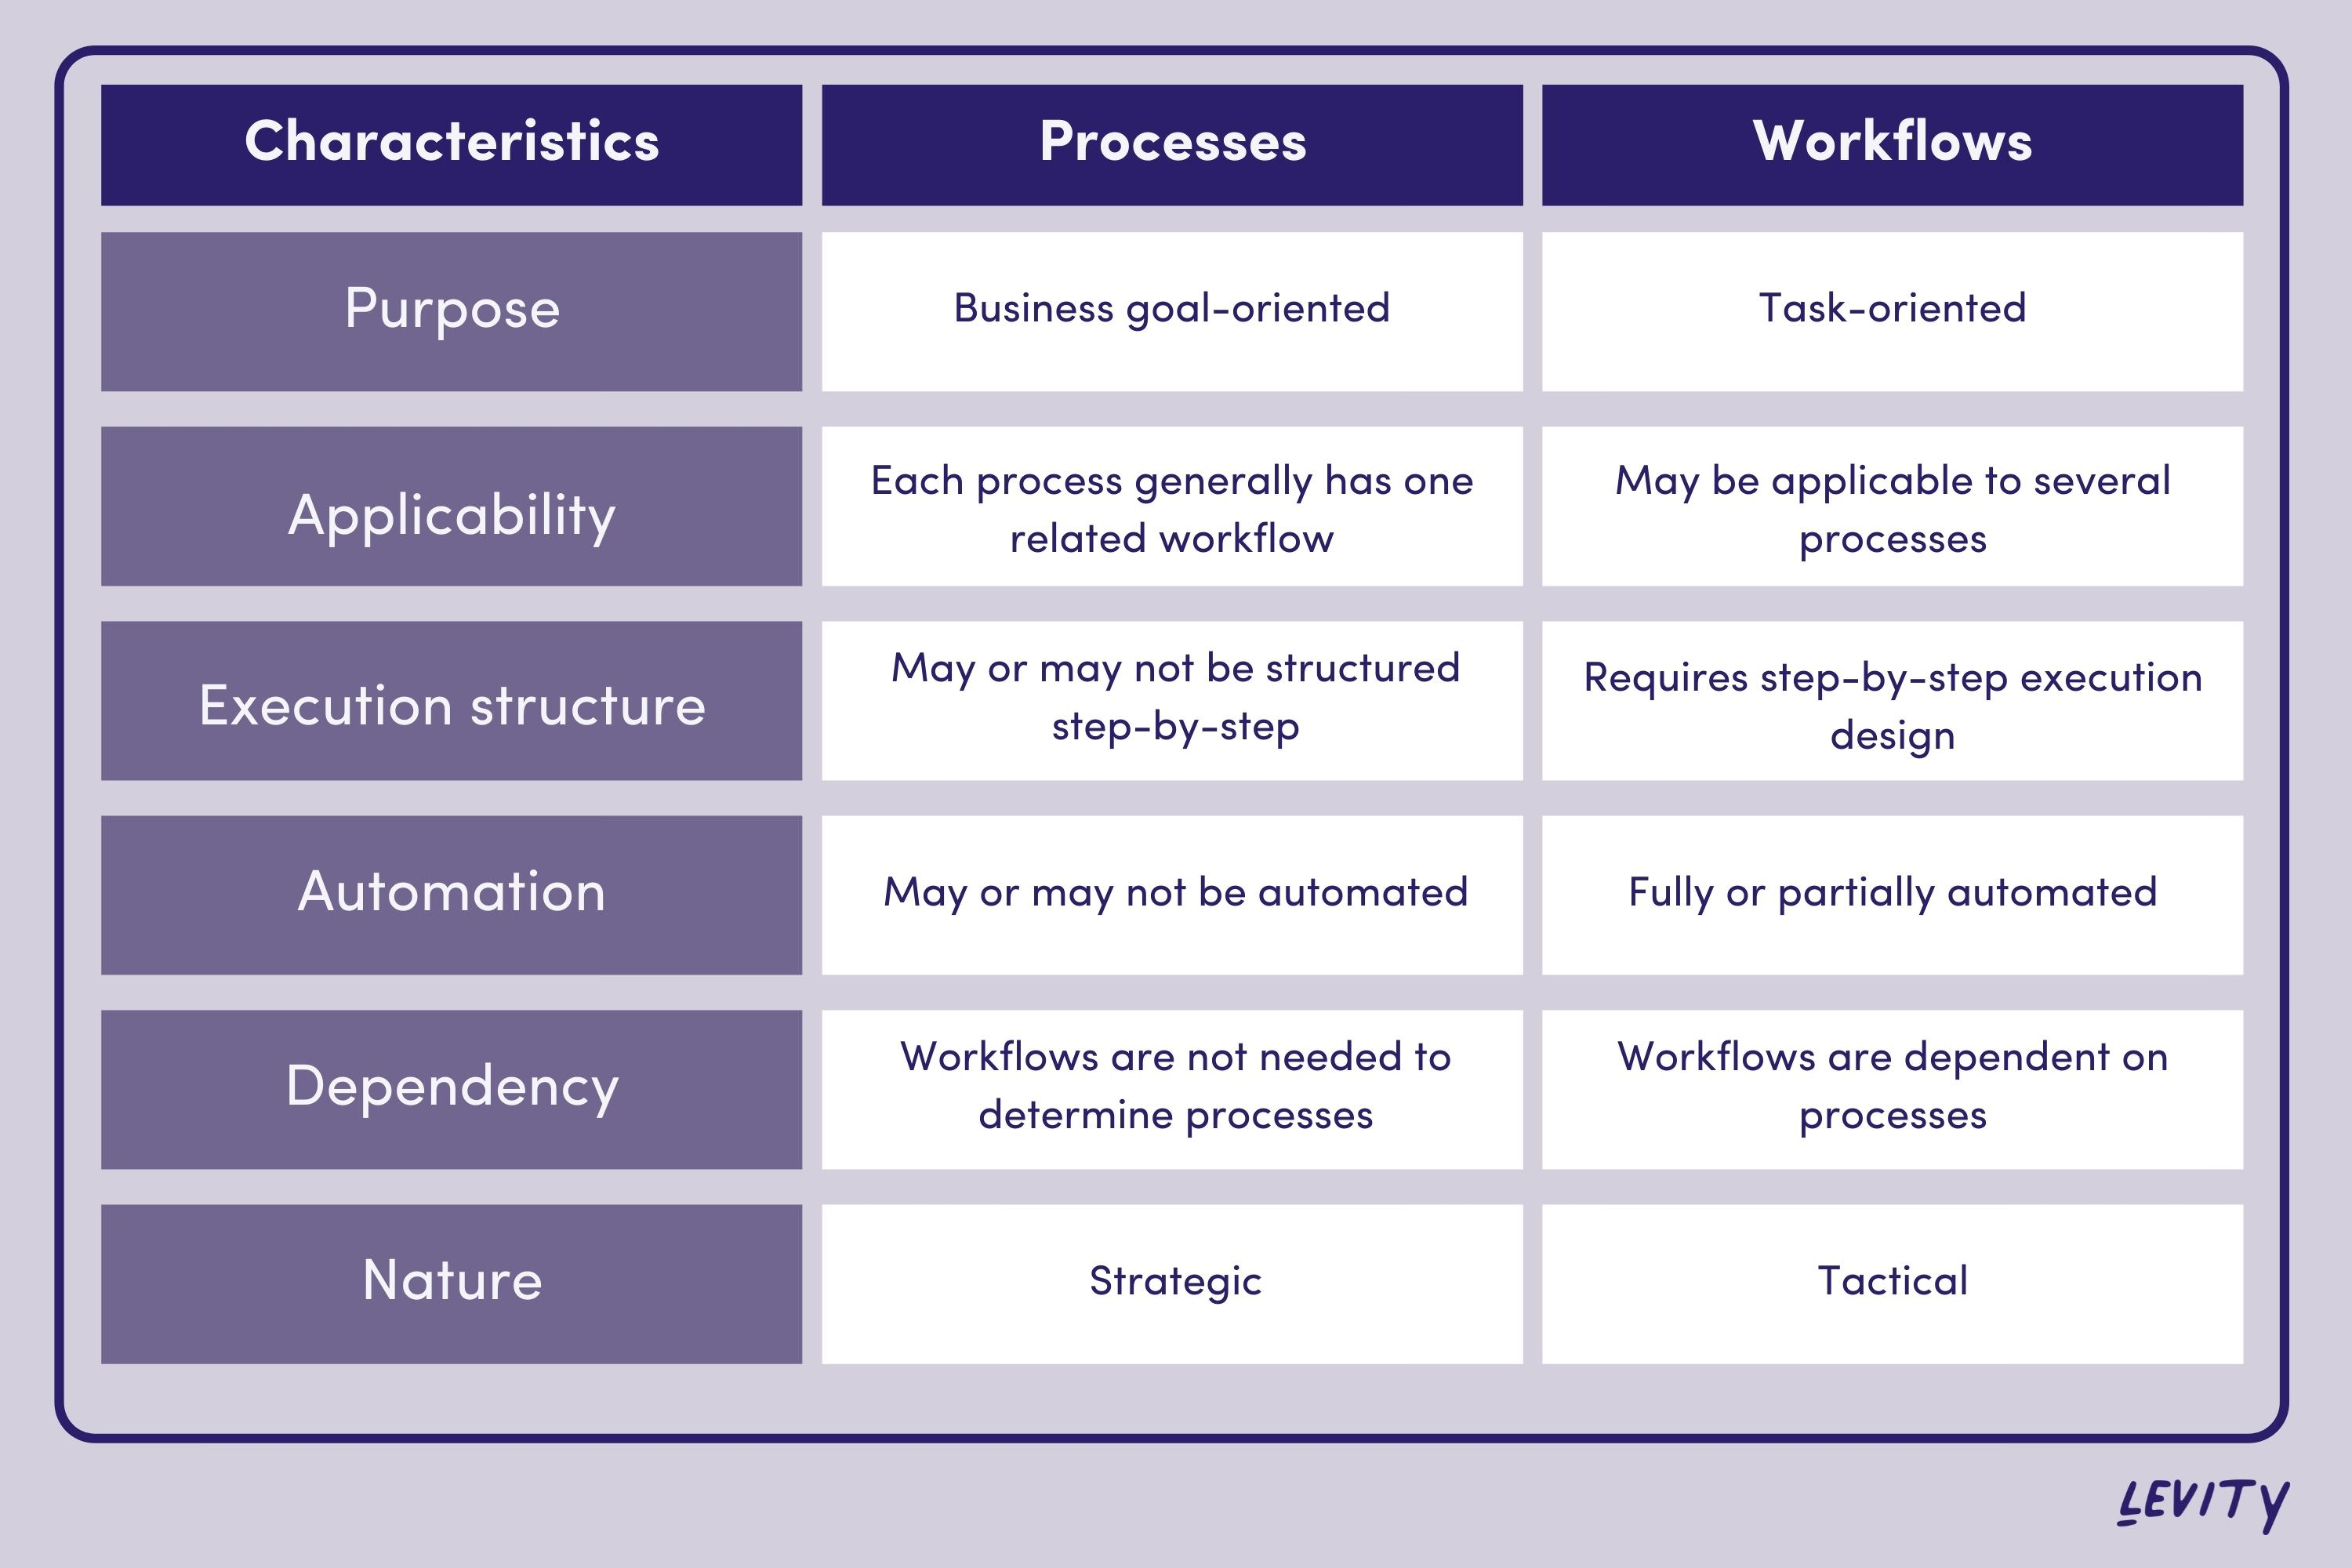 Key differences between workflows and processes